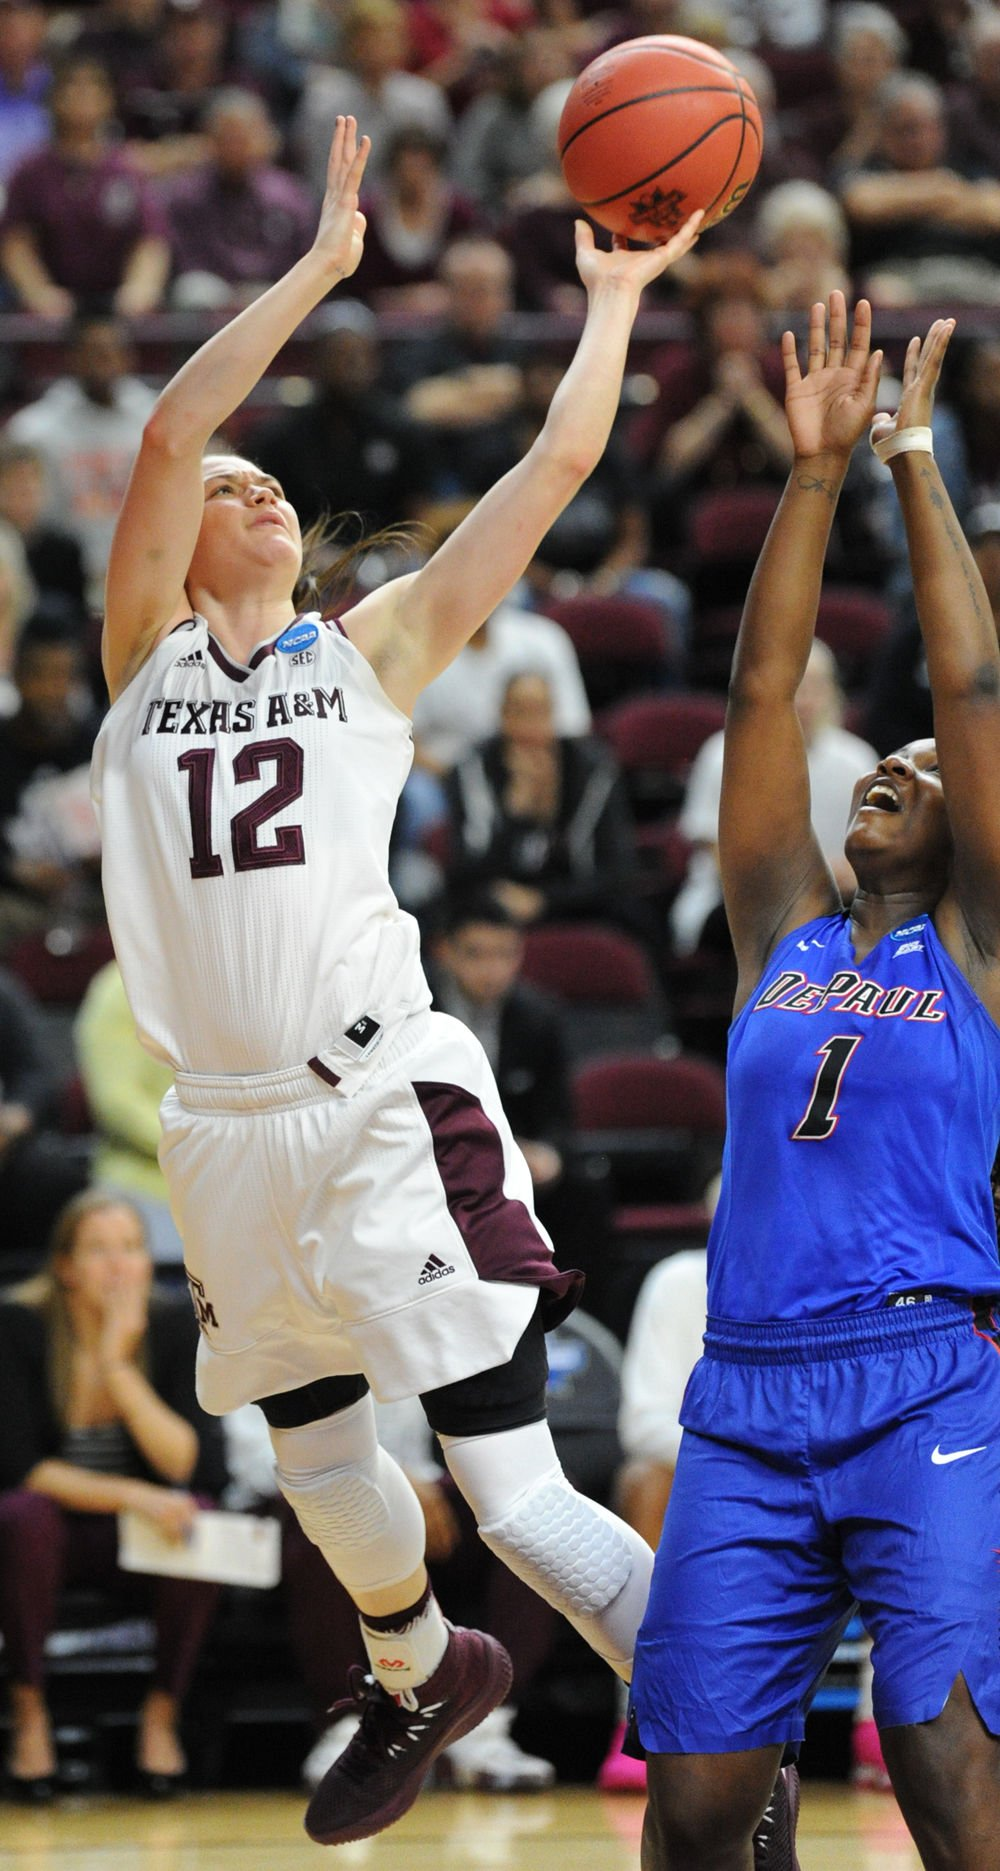 0f7c178c159 Carter's 3-pointer caps comeback win over DePaul, lifts Aggie women to  Sweet 16 | Aggie Sports | theeagle.com